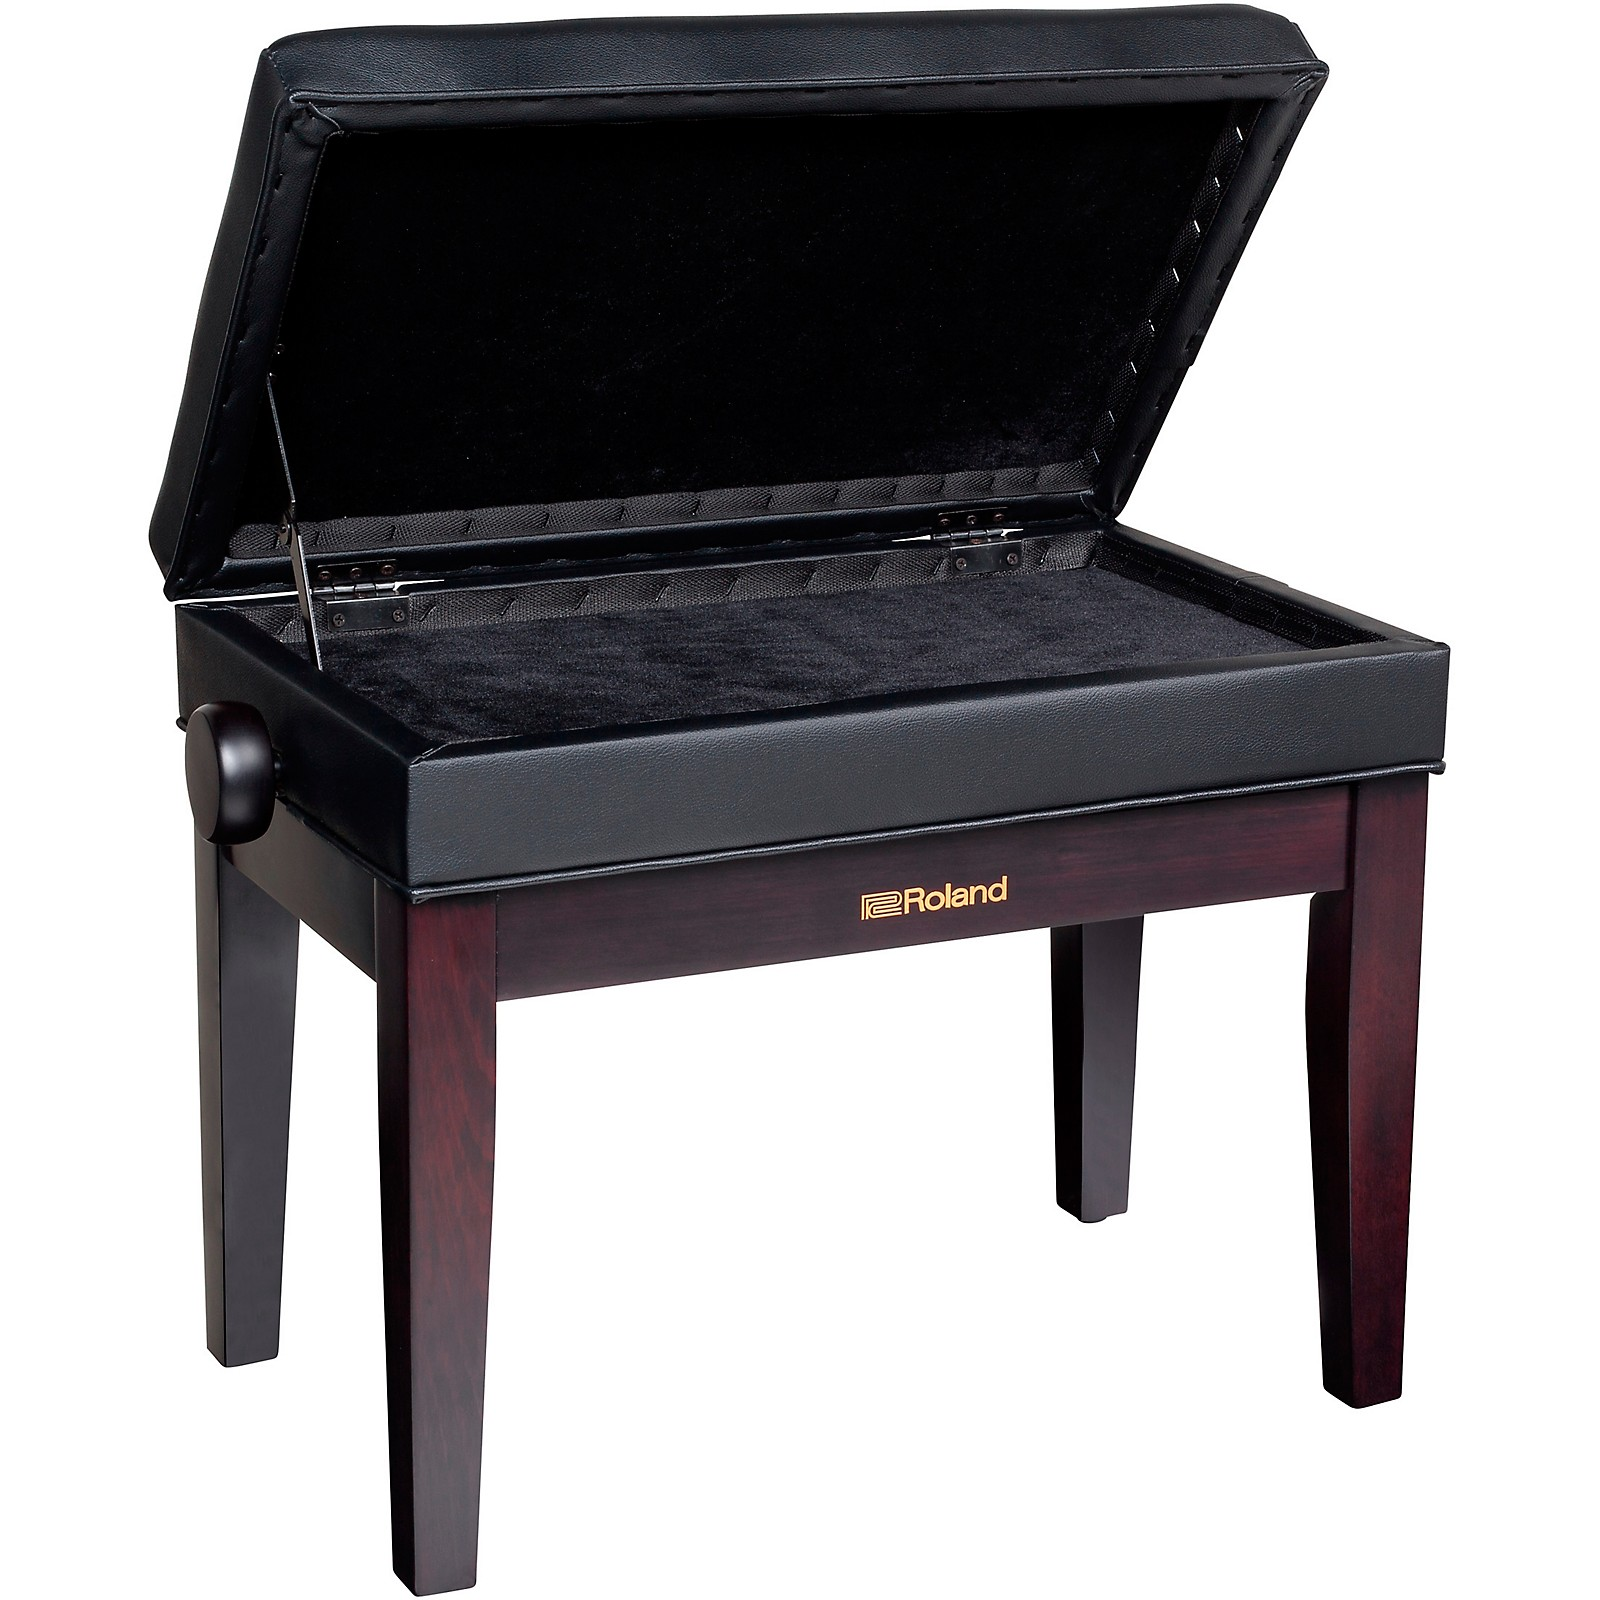 Roland RPB-500PE Bench - Cushioned with Storage Compartment